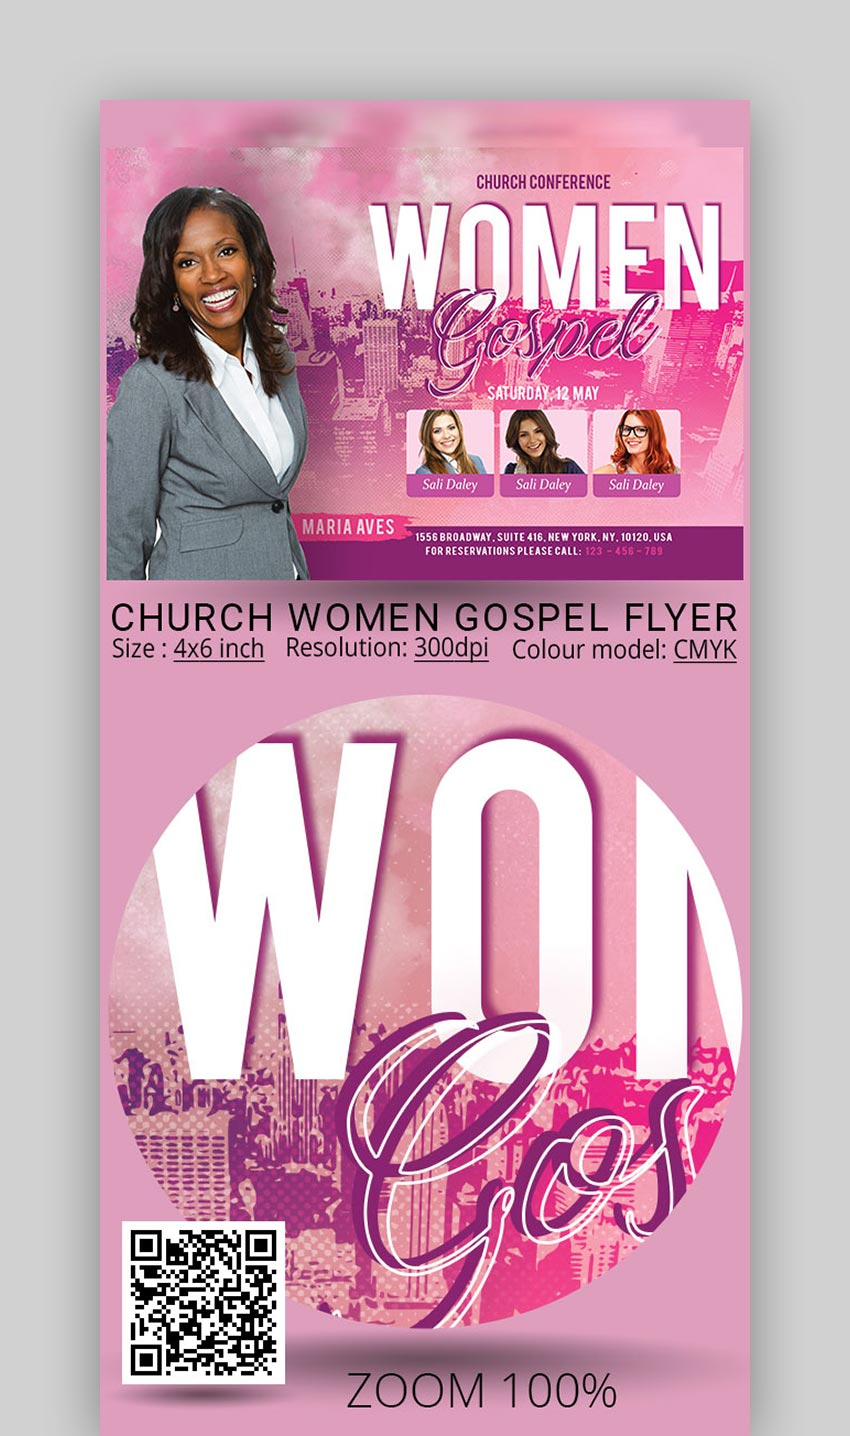 Church Women Gospel Flyer